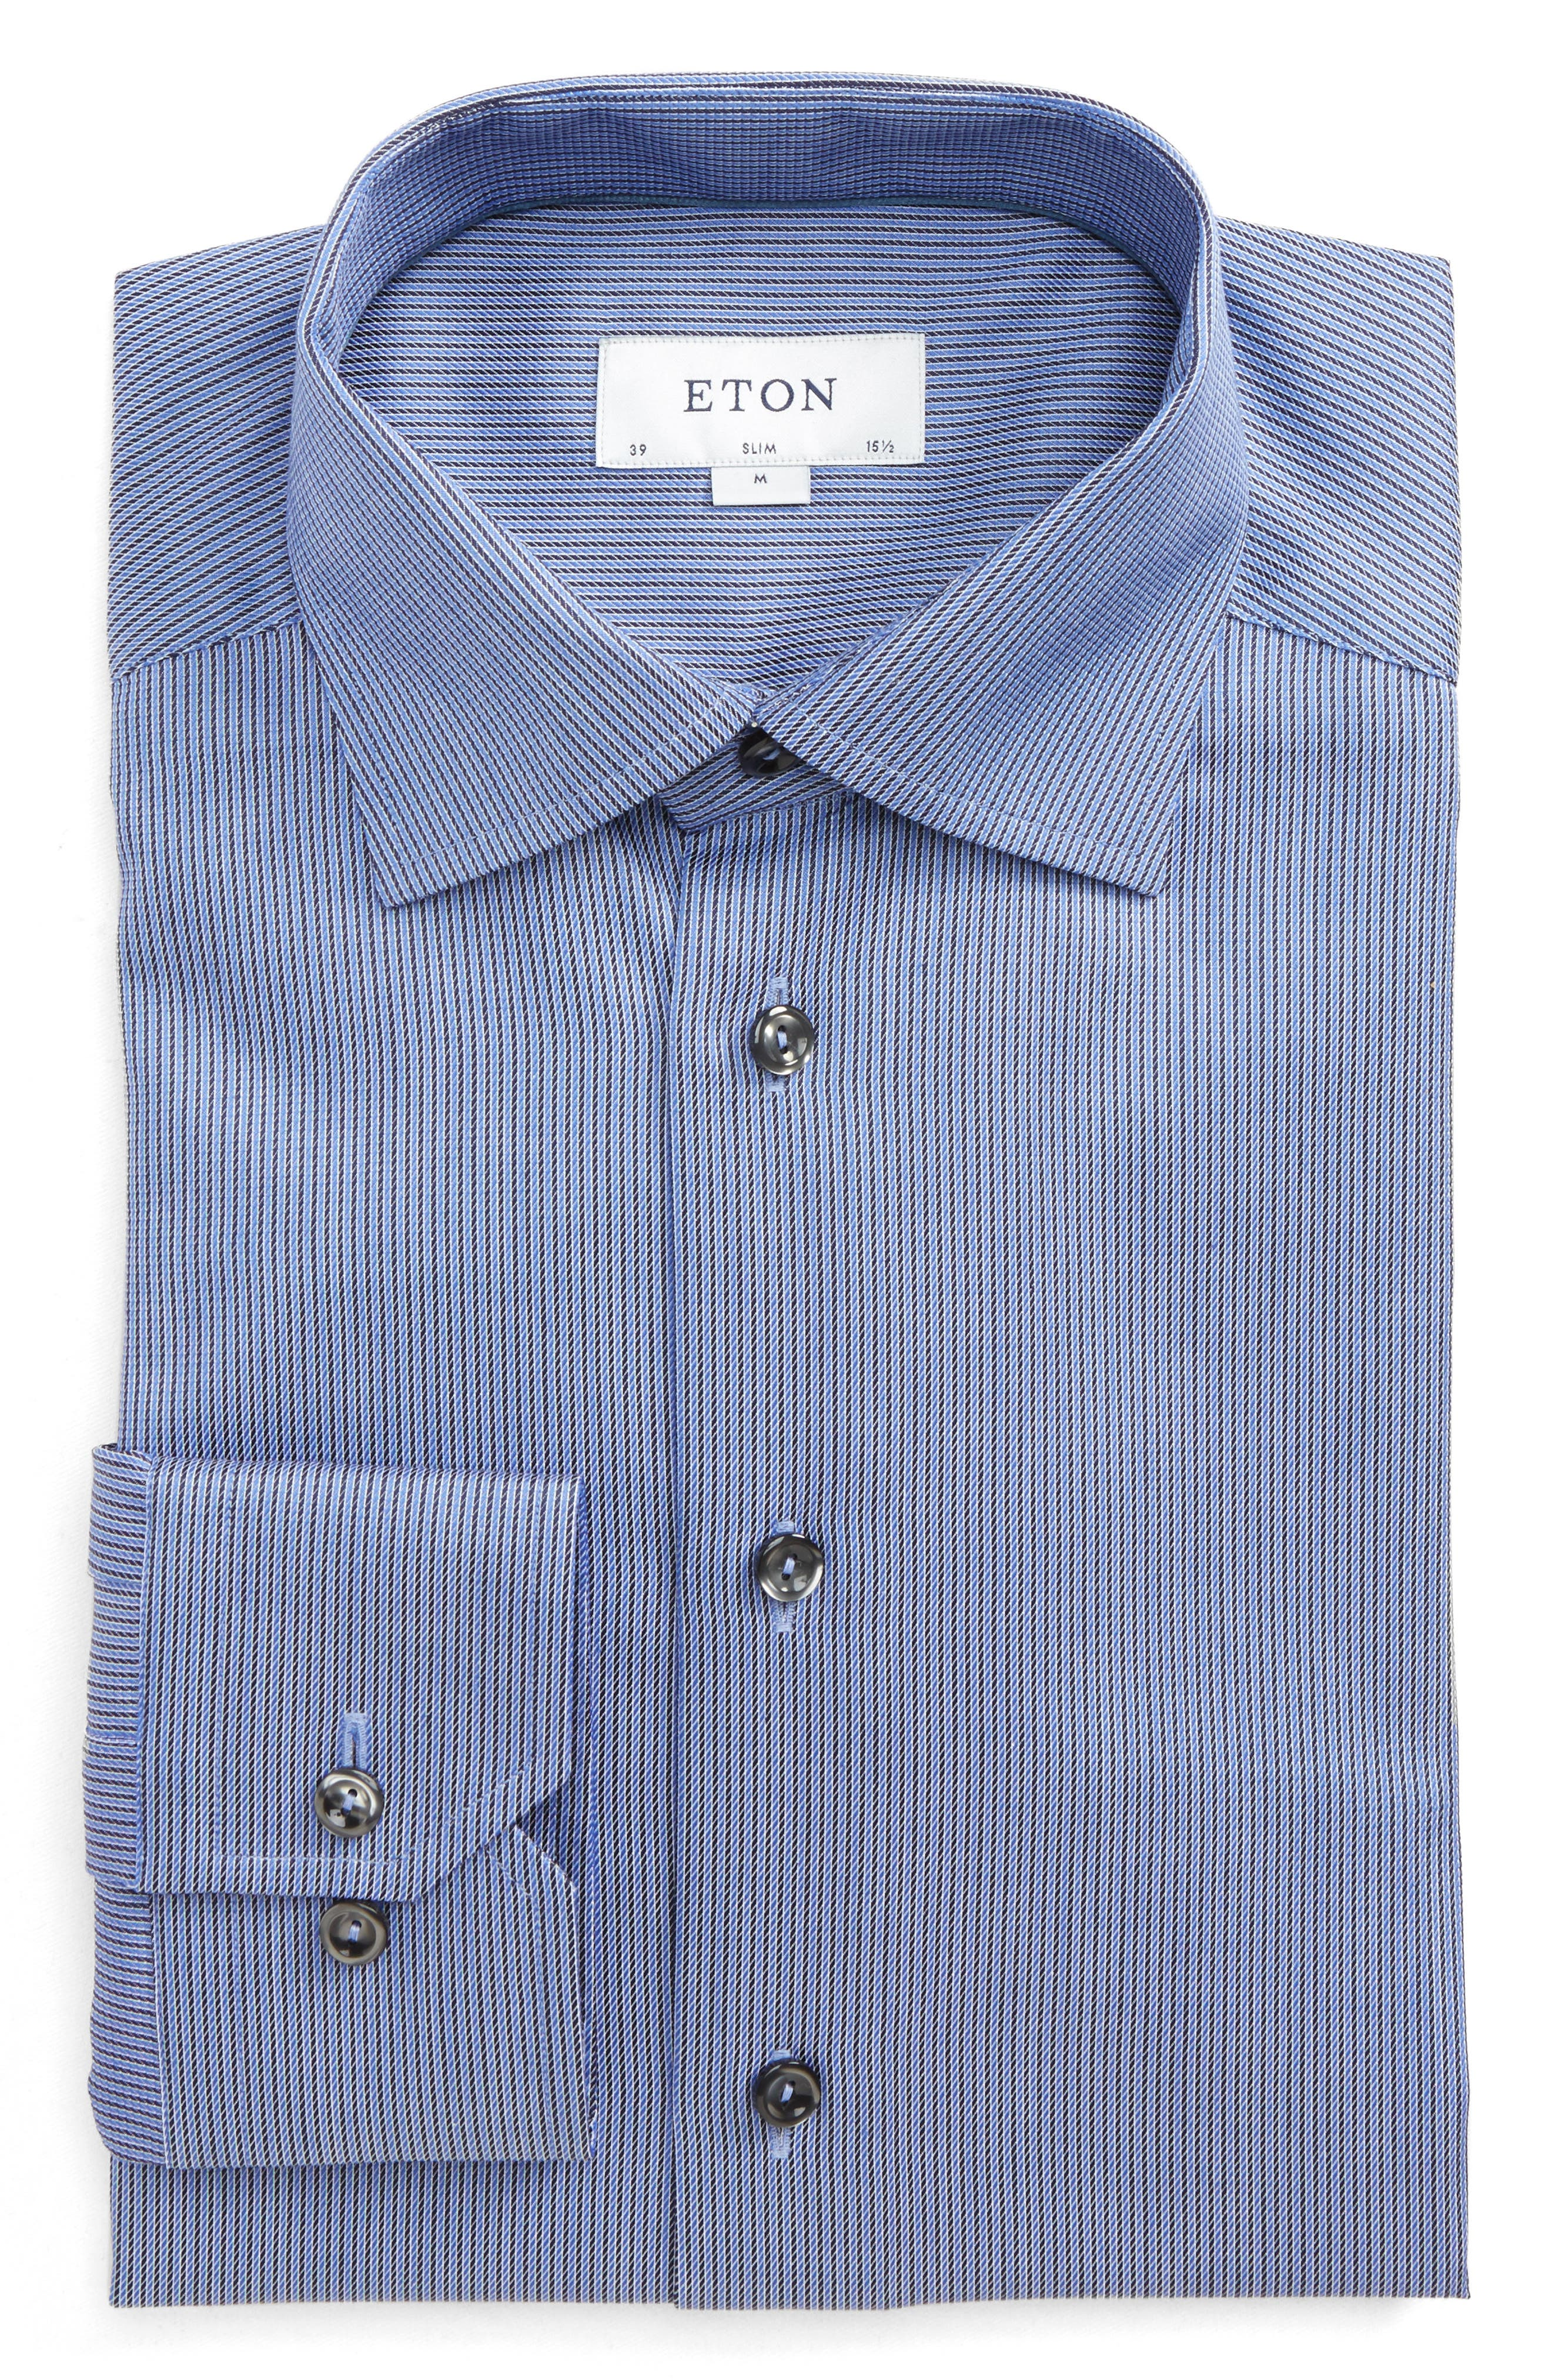 Main Image - Eton Slim Fit Stripe Dress Shirt